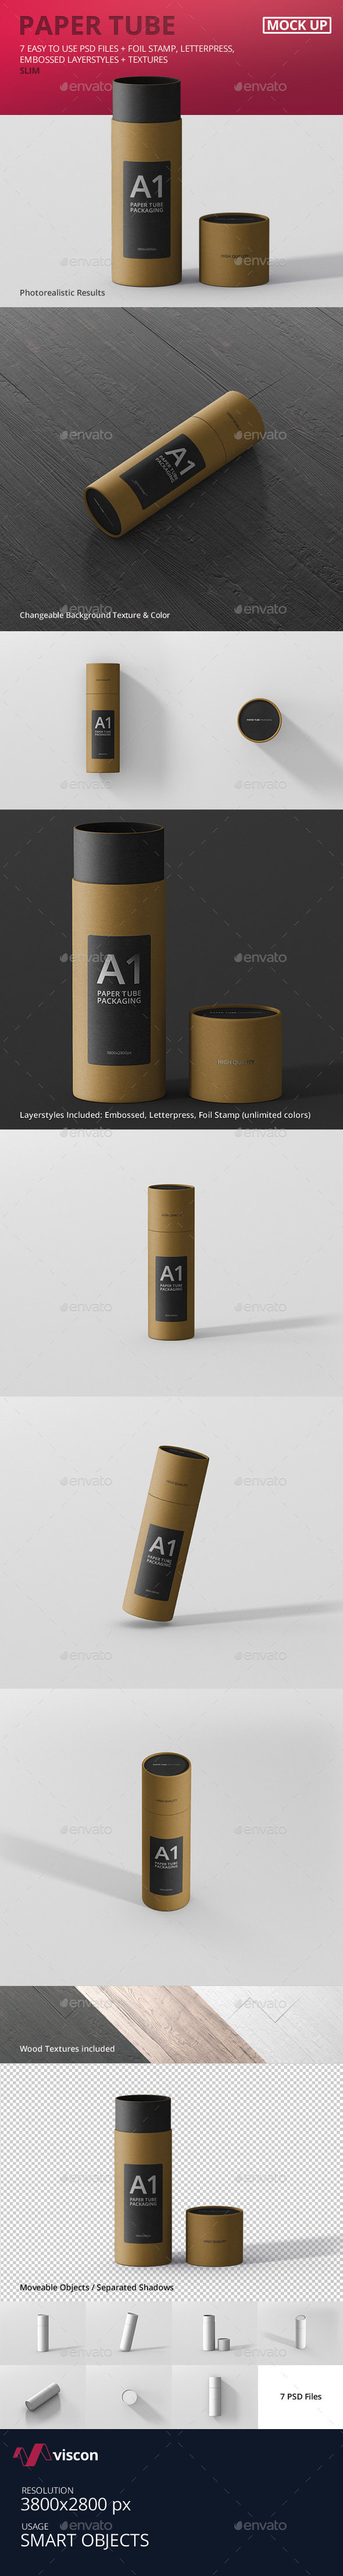 Paper Tube Packaging Mockup - Slim - Miscellaneous Packaging